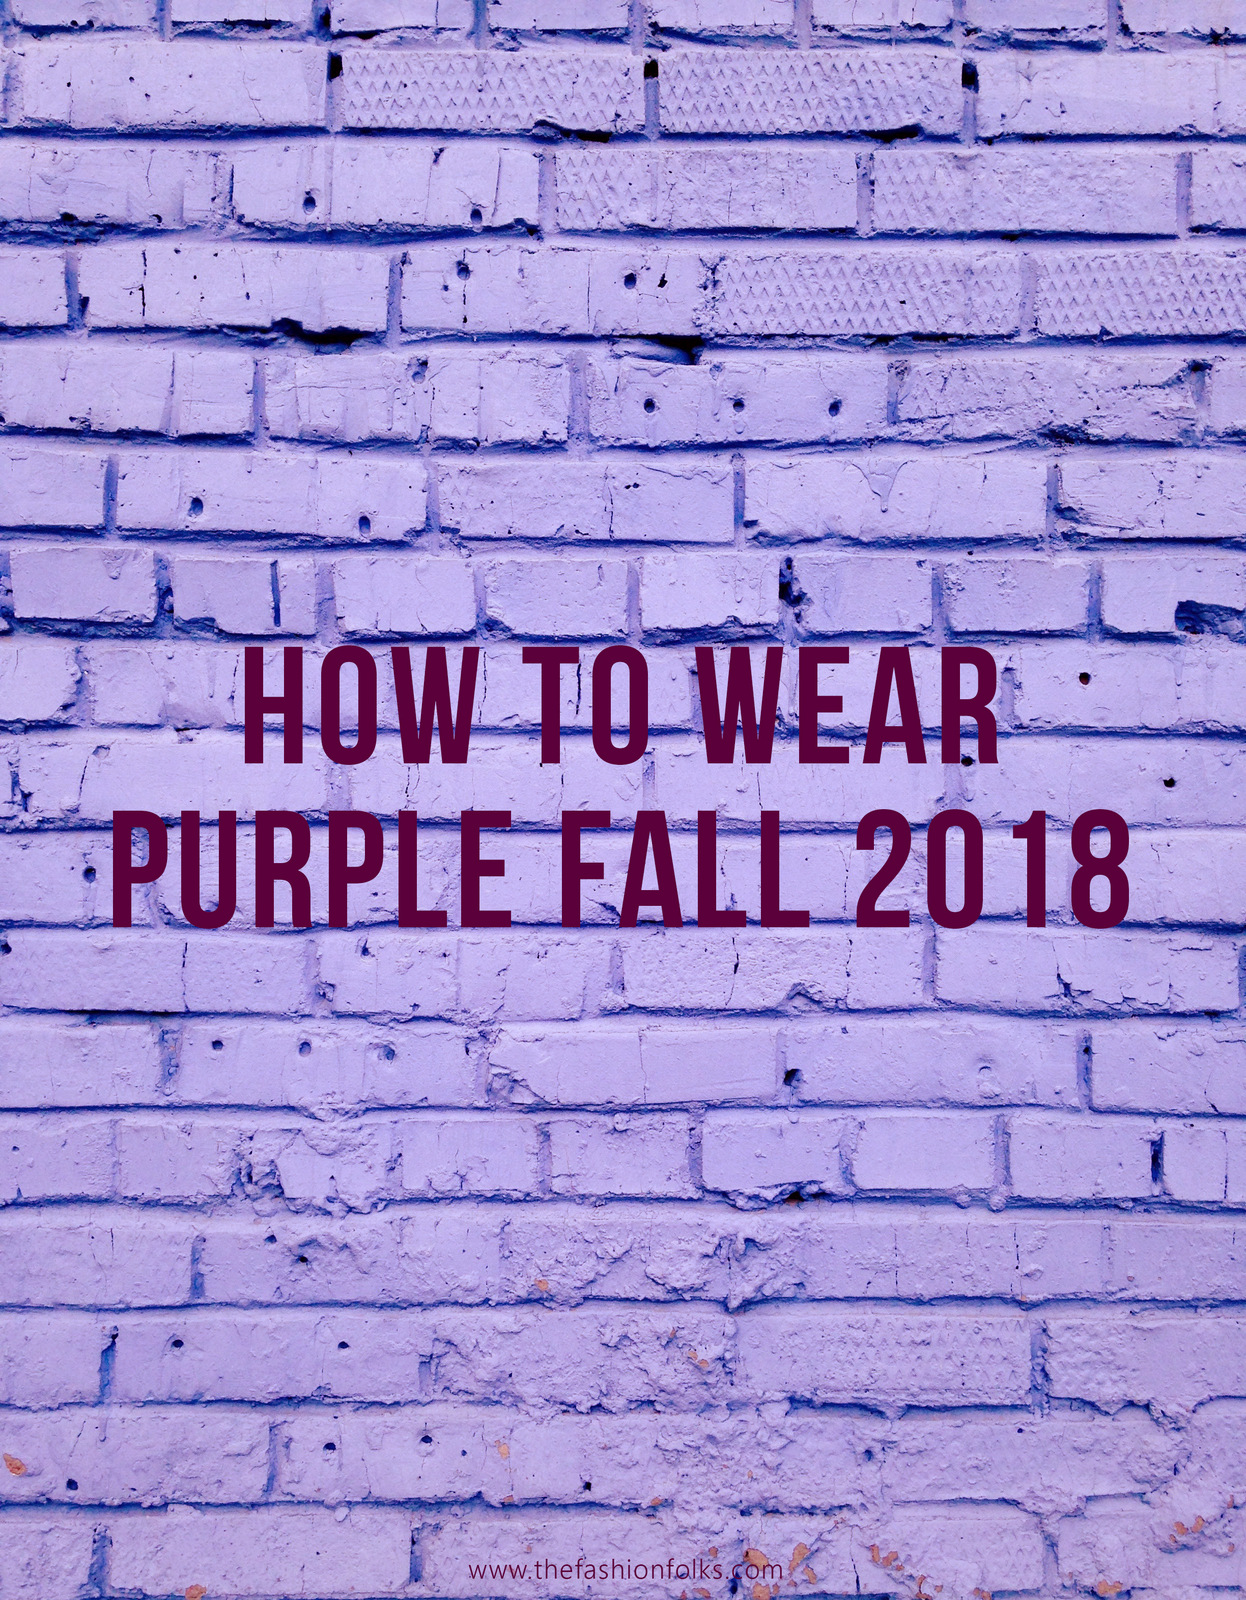 How To Wear Purple Fall 2018